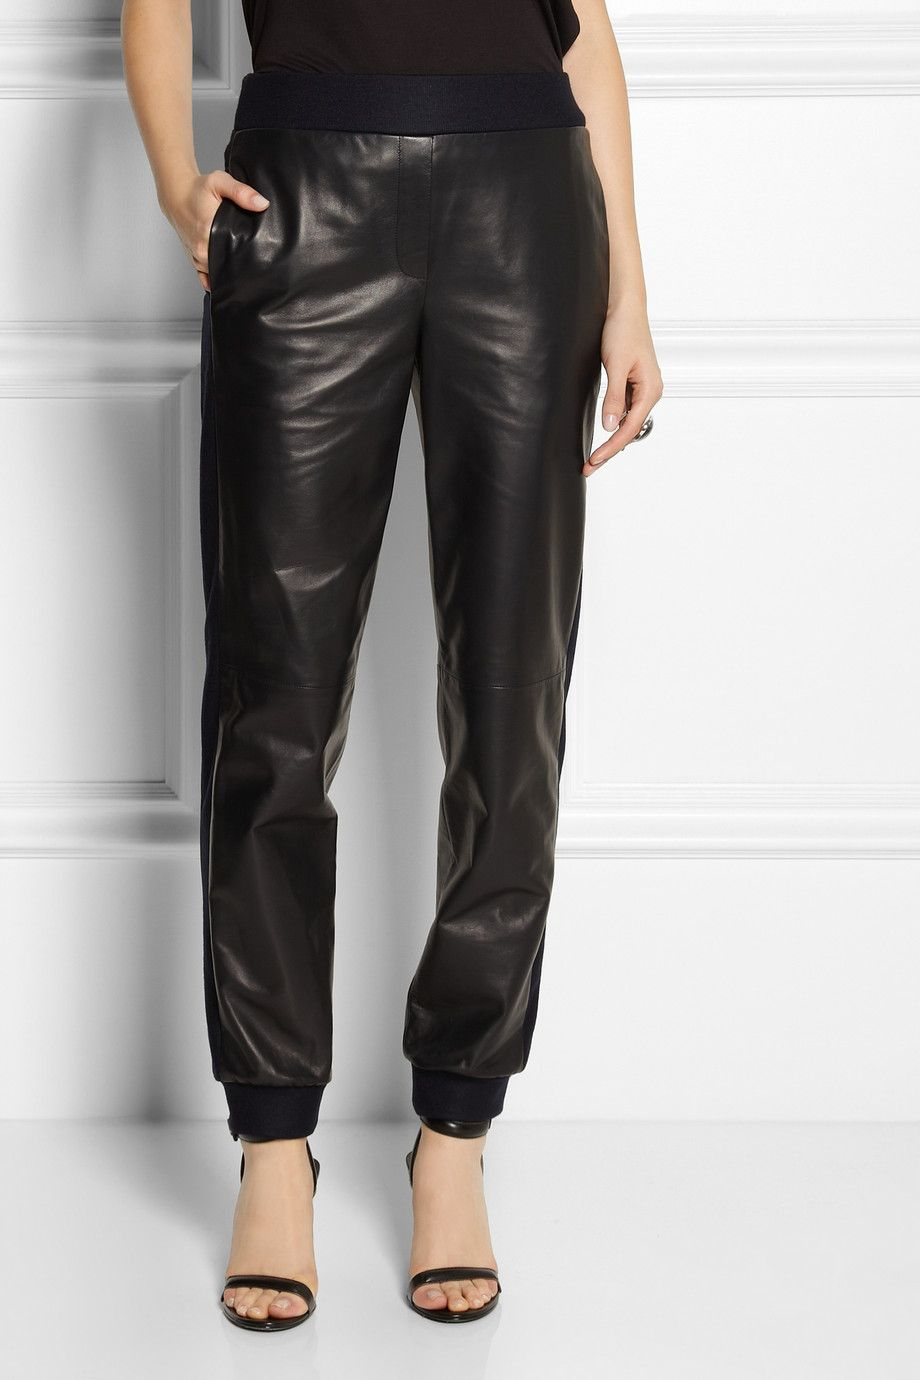 Reed Krakoff   Felt-trimmed leather tapered pants...leather bottoms it was only a matter of time ey!!! but I do think with a burst of coloured heel sandals this could make a nice casual (but not tracksuit casual) outfit!